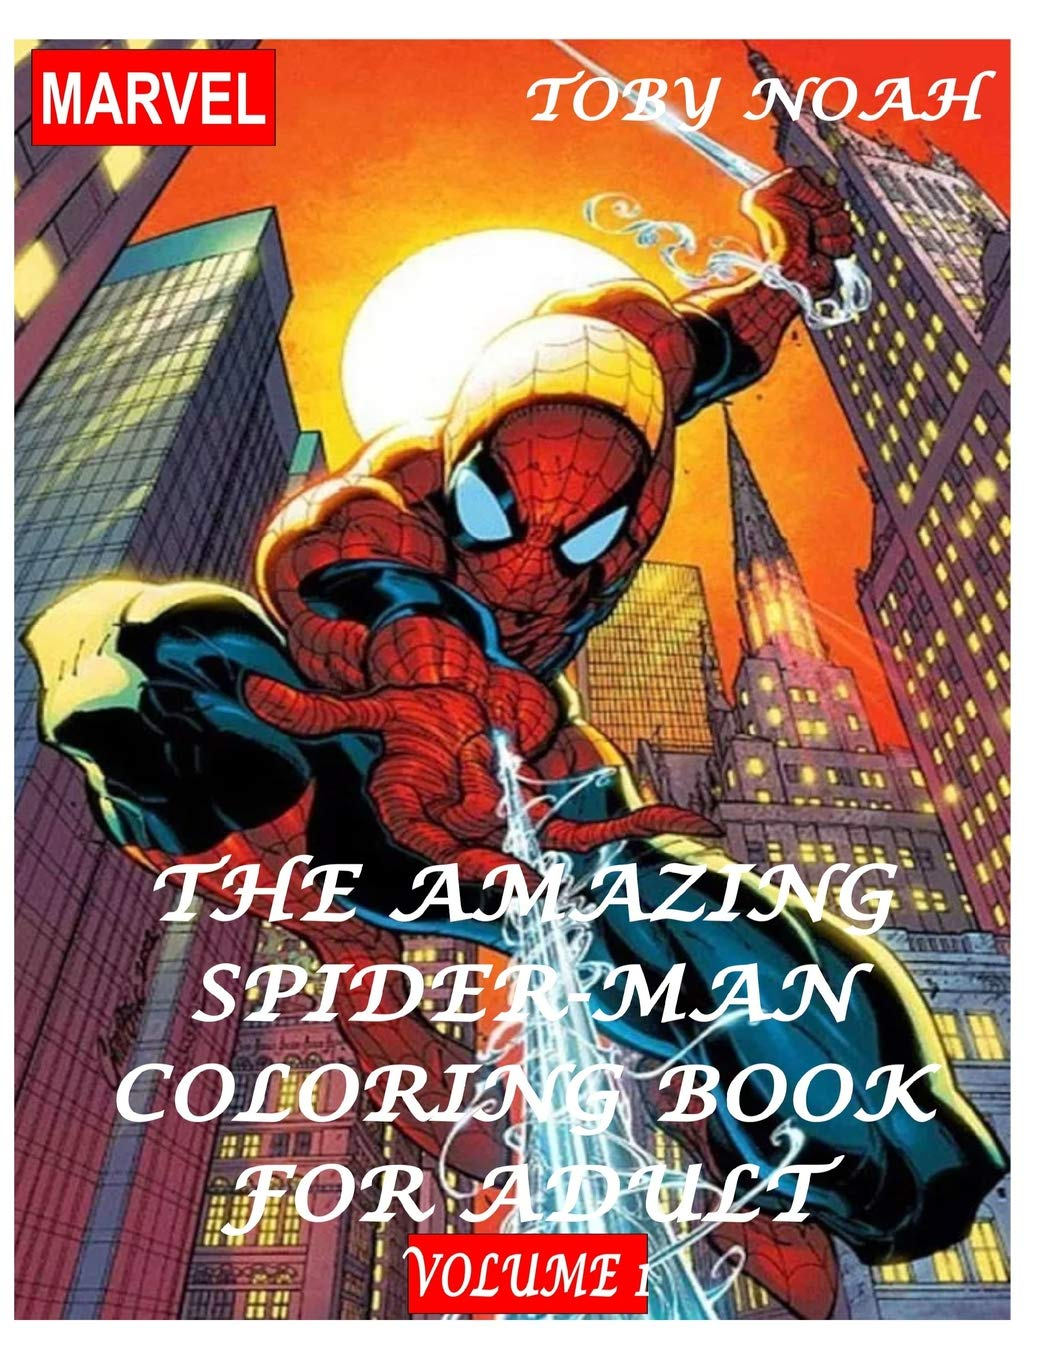 - The Amazing Spiderman Coloring Book For Adult - Volume 1: Olushola